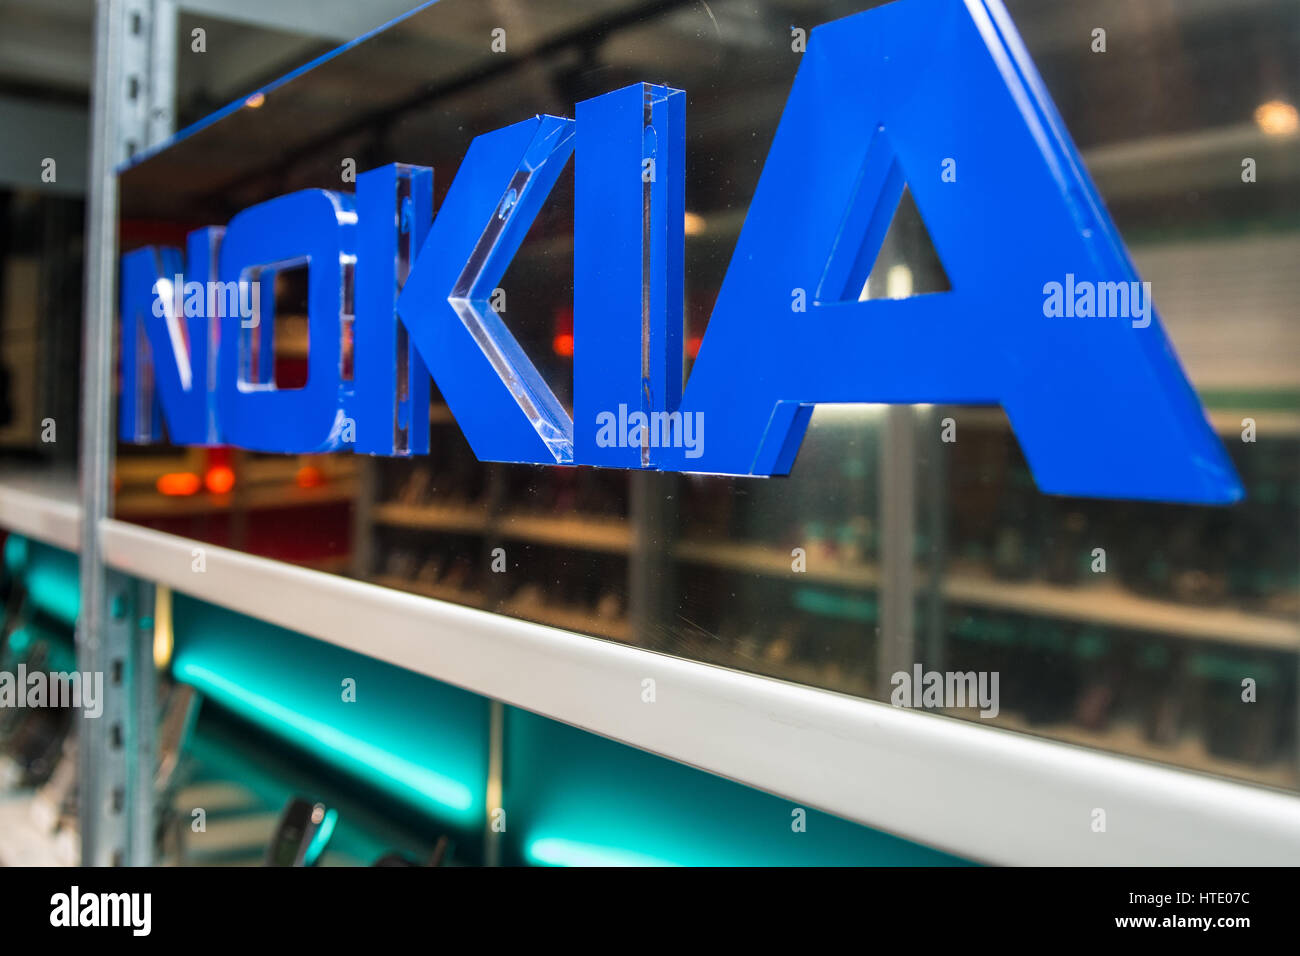 Salo, Finland, 08.03.2017. View of the Elektroniikka Museum collection of Nokia product. Stock Photo